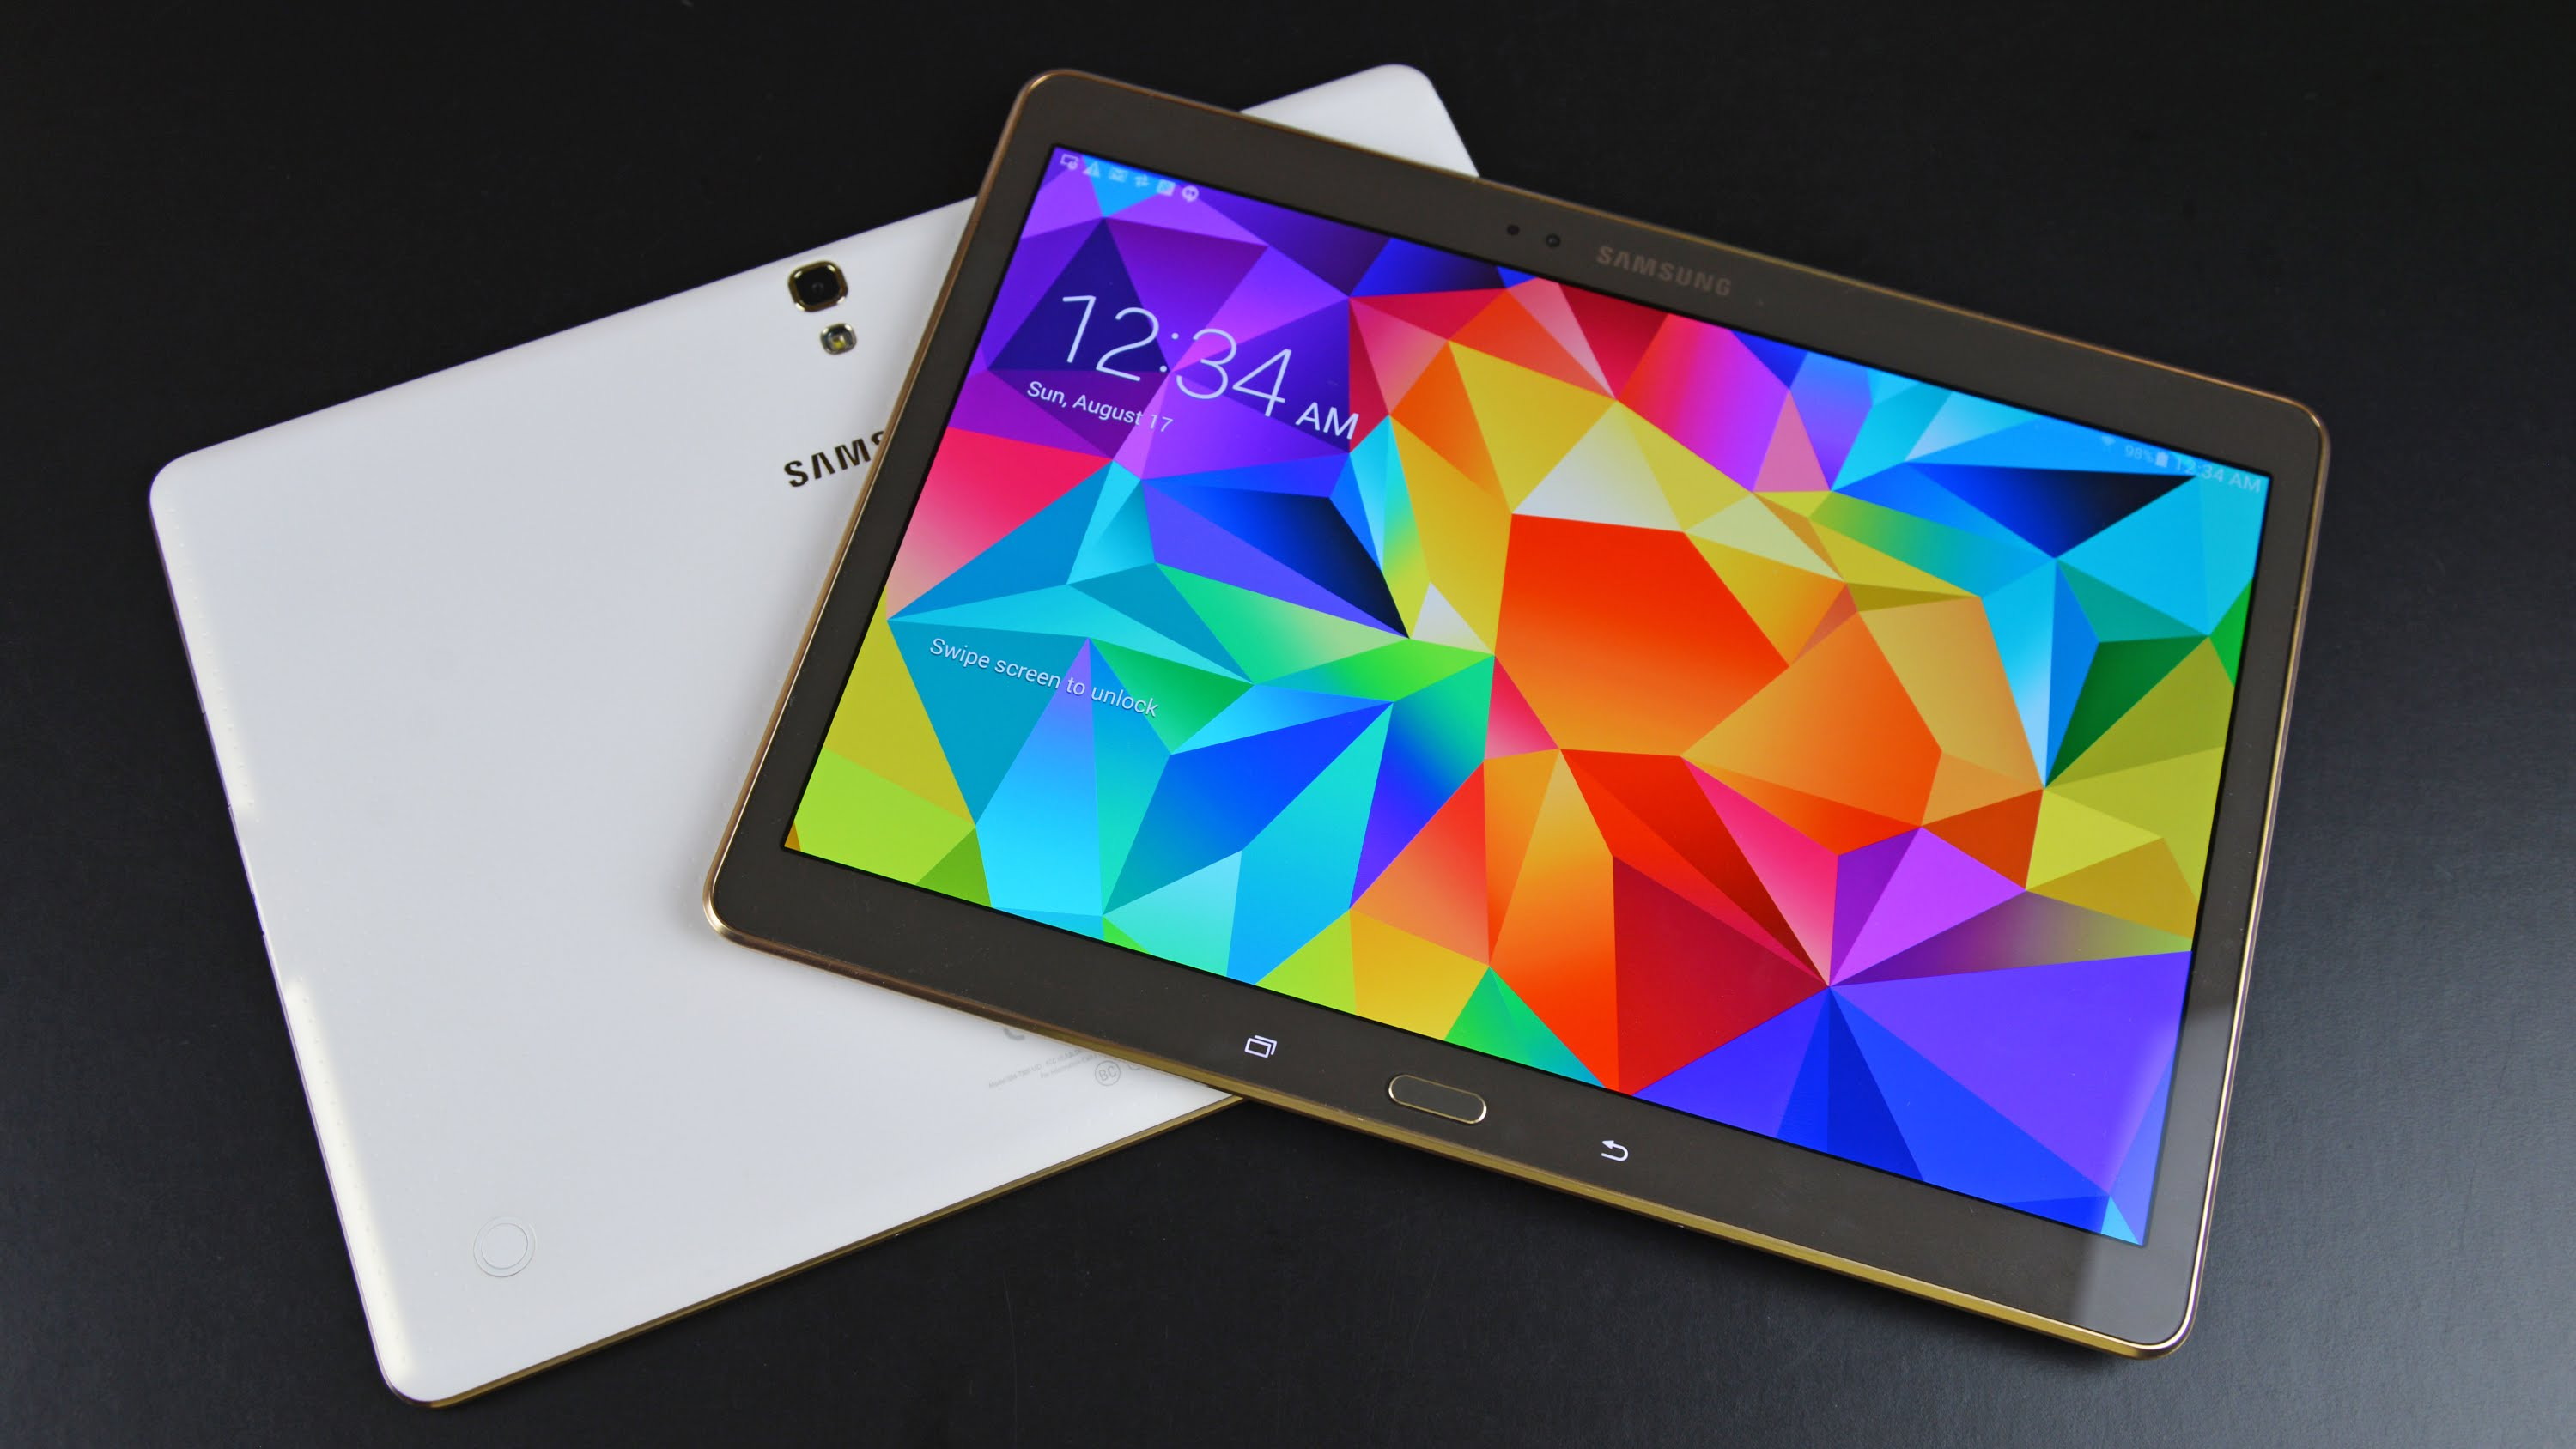 How to install CWM recovery on Samsung Galaxy Tab S 10.5